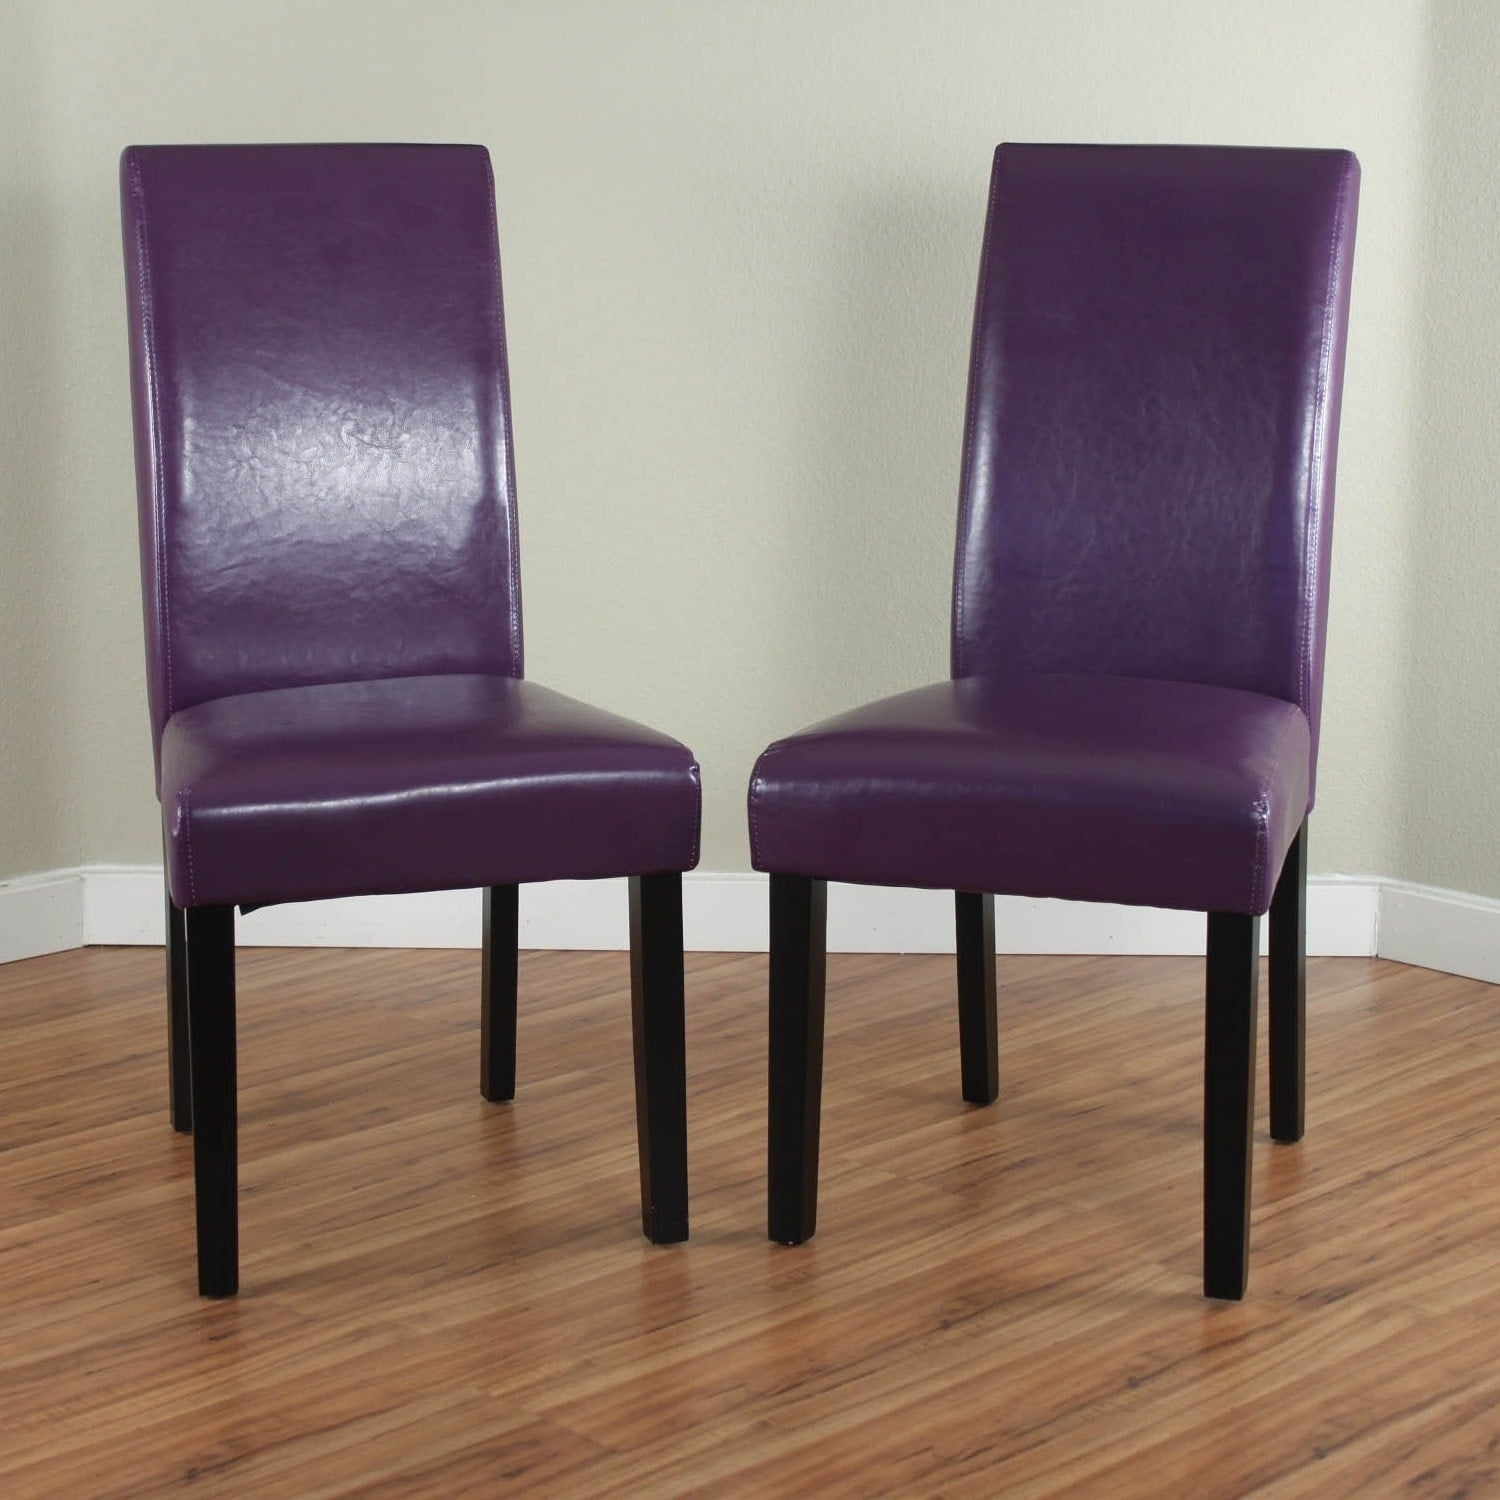 dining chairs overstock folding table chair set buy kitchen and room online at